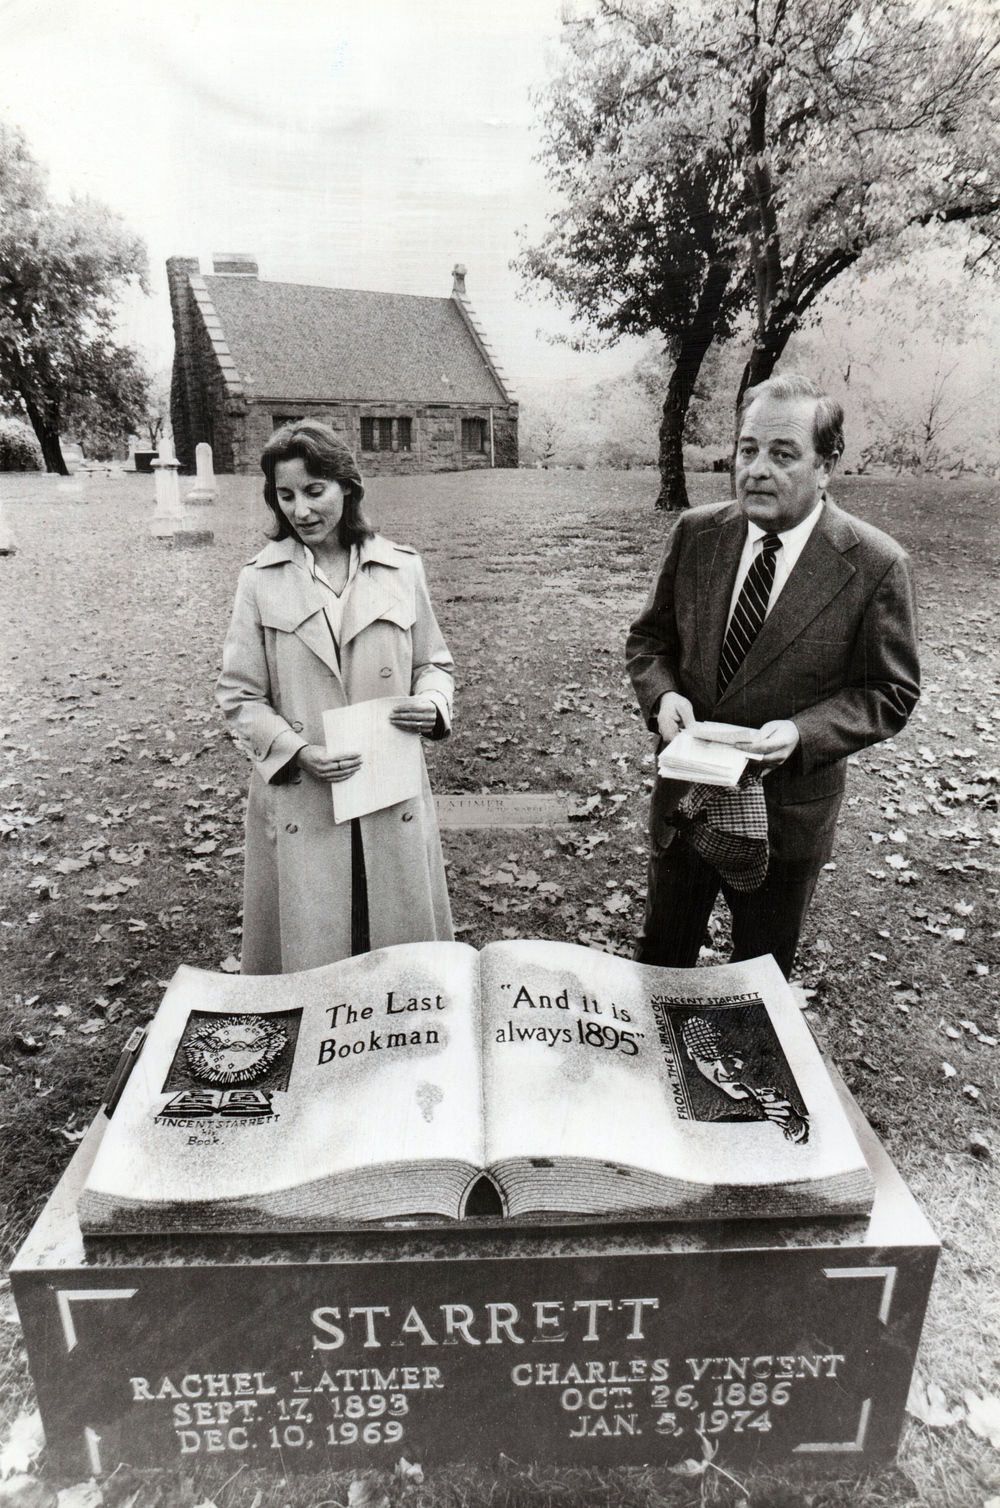 Laura Page and Robert Mangler at the Oct. 26, 1986 dedication of the Vincent Starrett headstone. Photo by Tom Cruze for the Chicago Sun-Times.